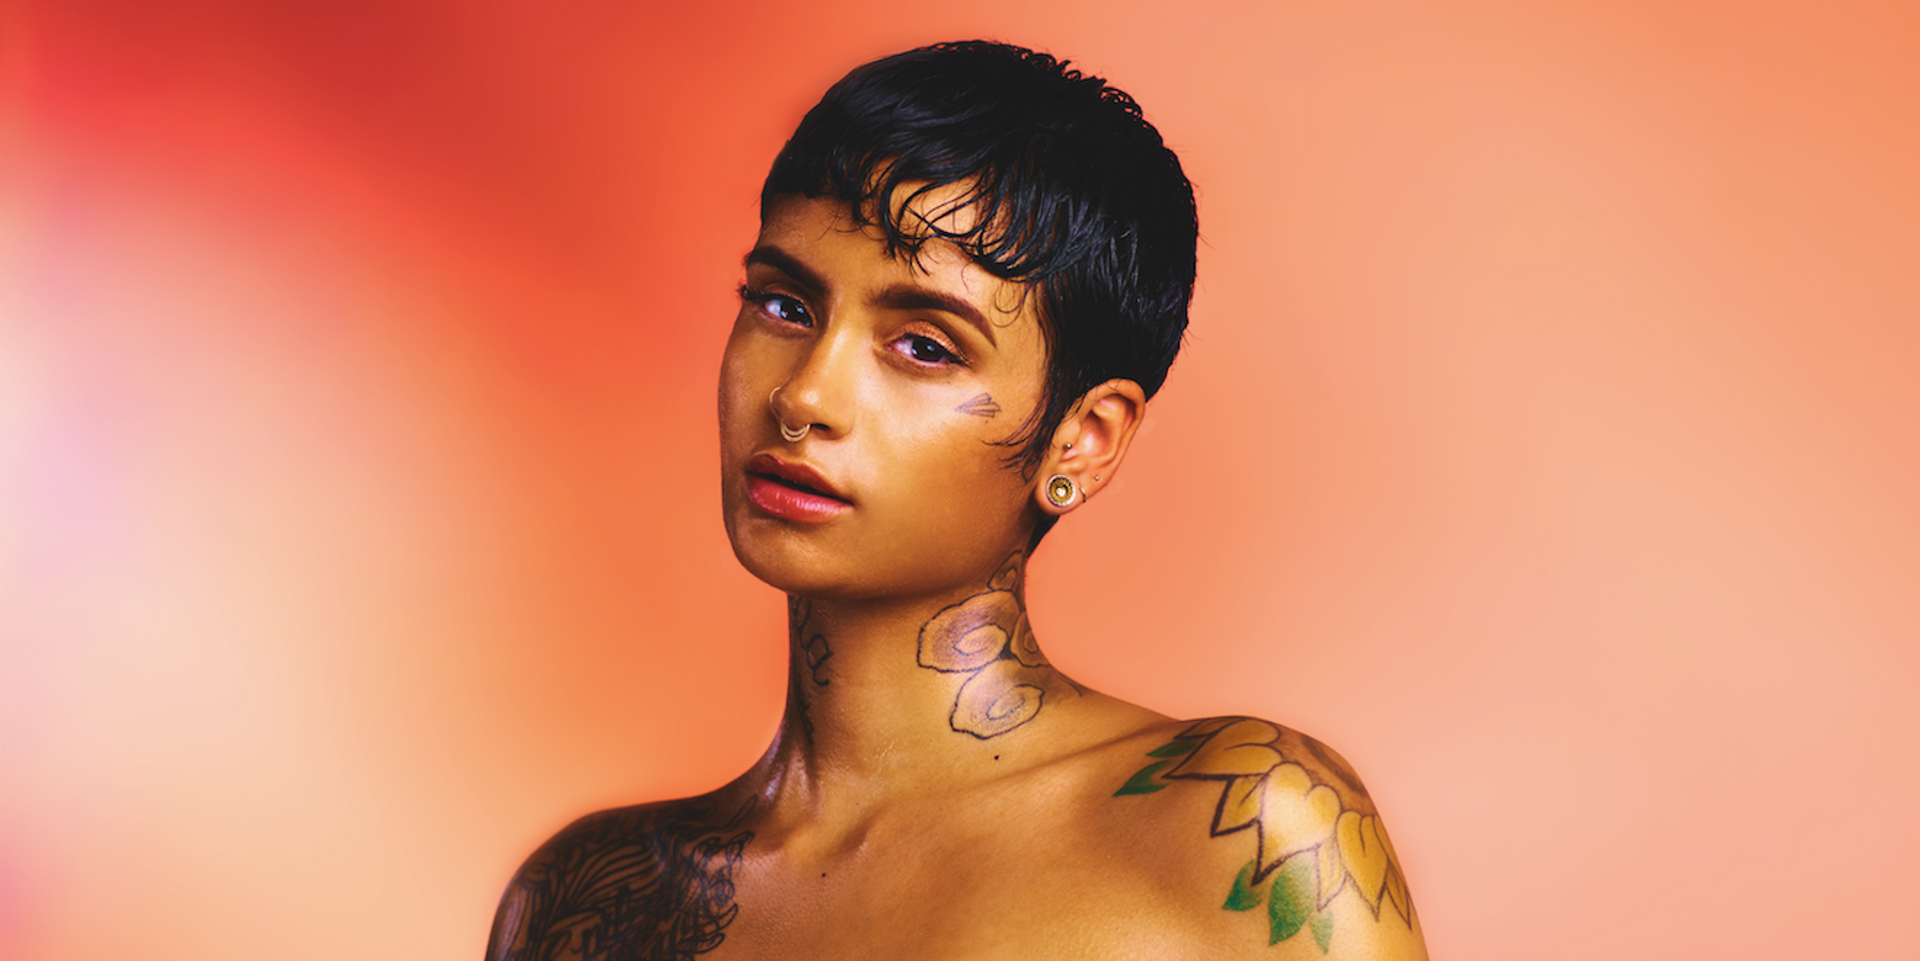 Kehlani to perform in Singapore for the first time in May